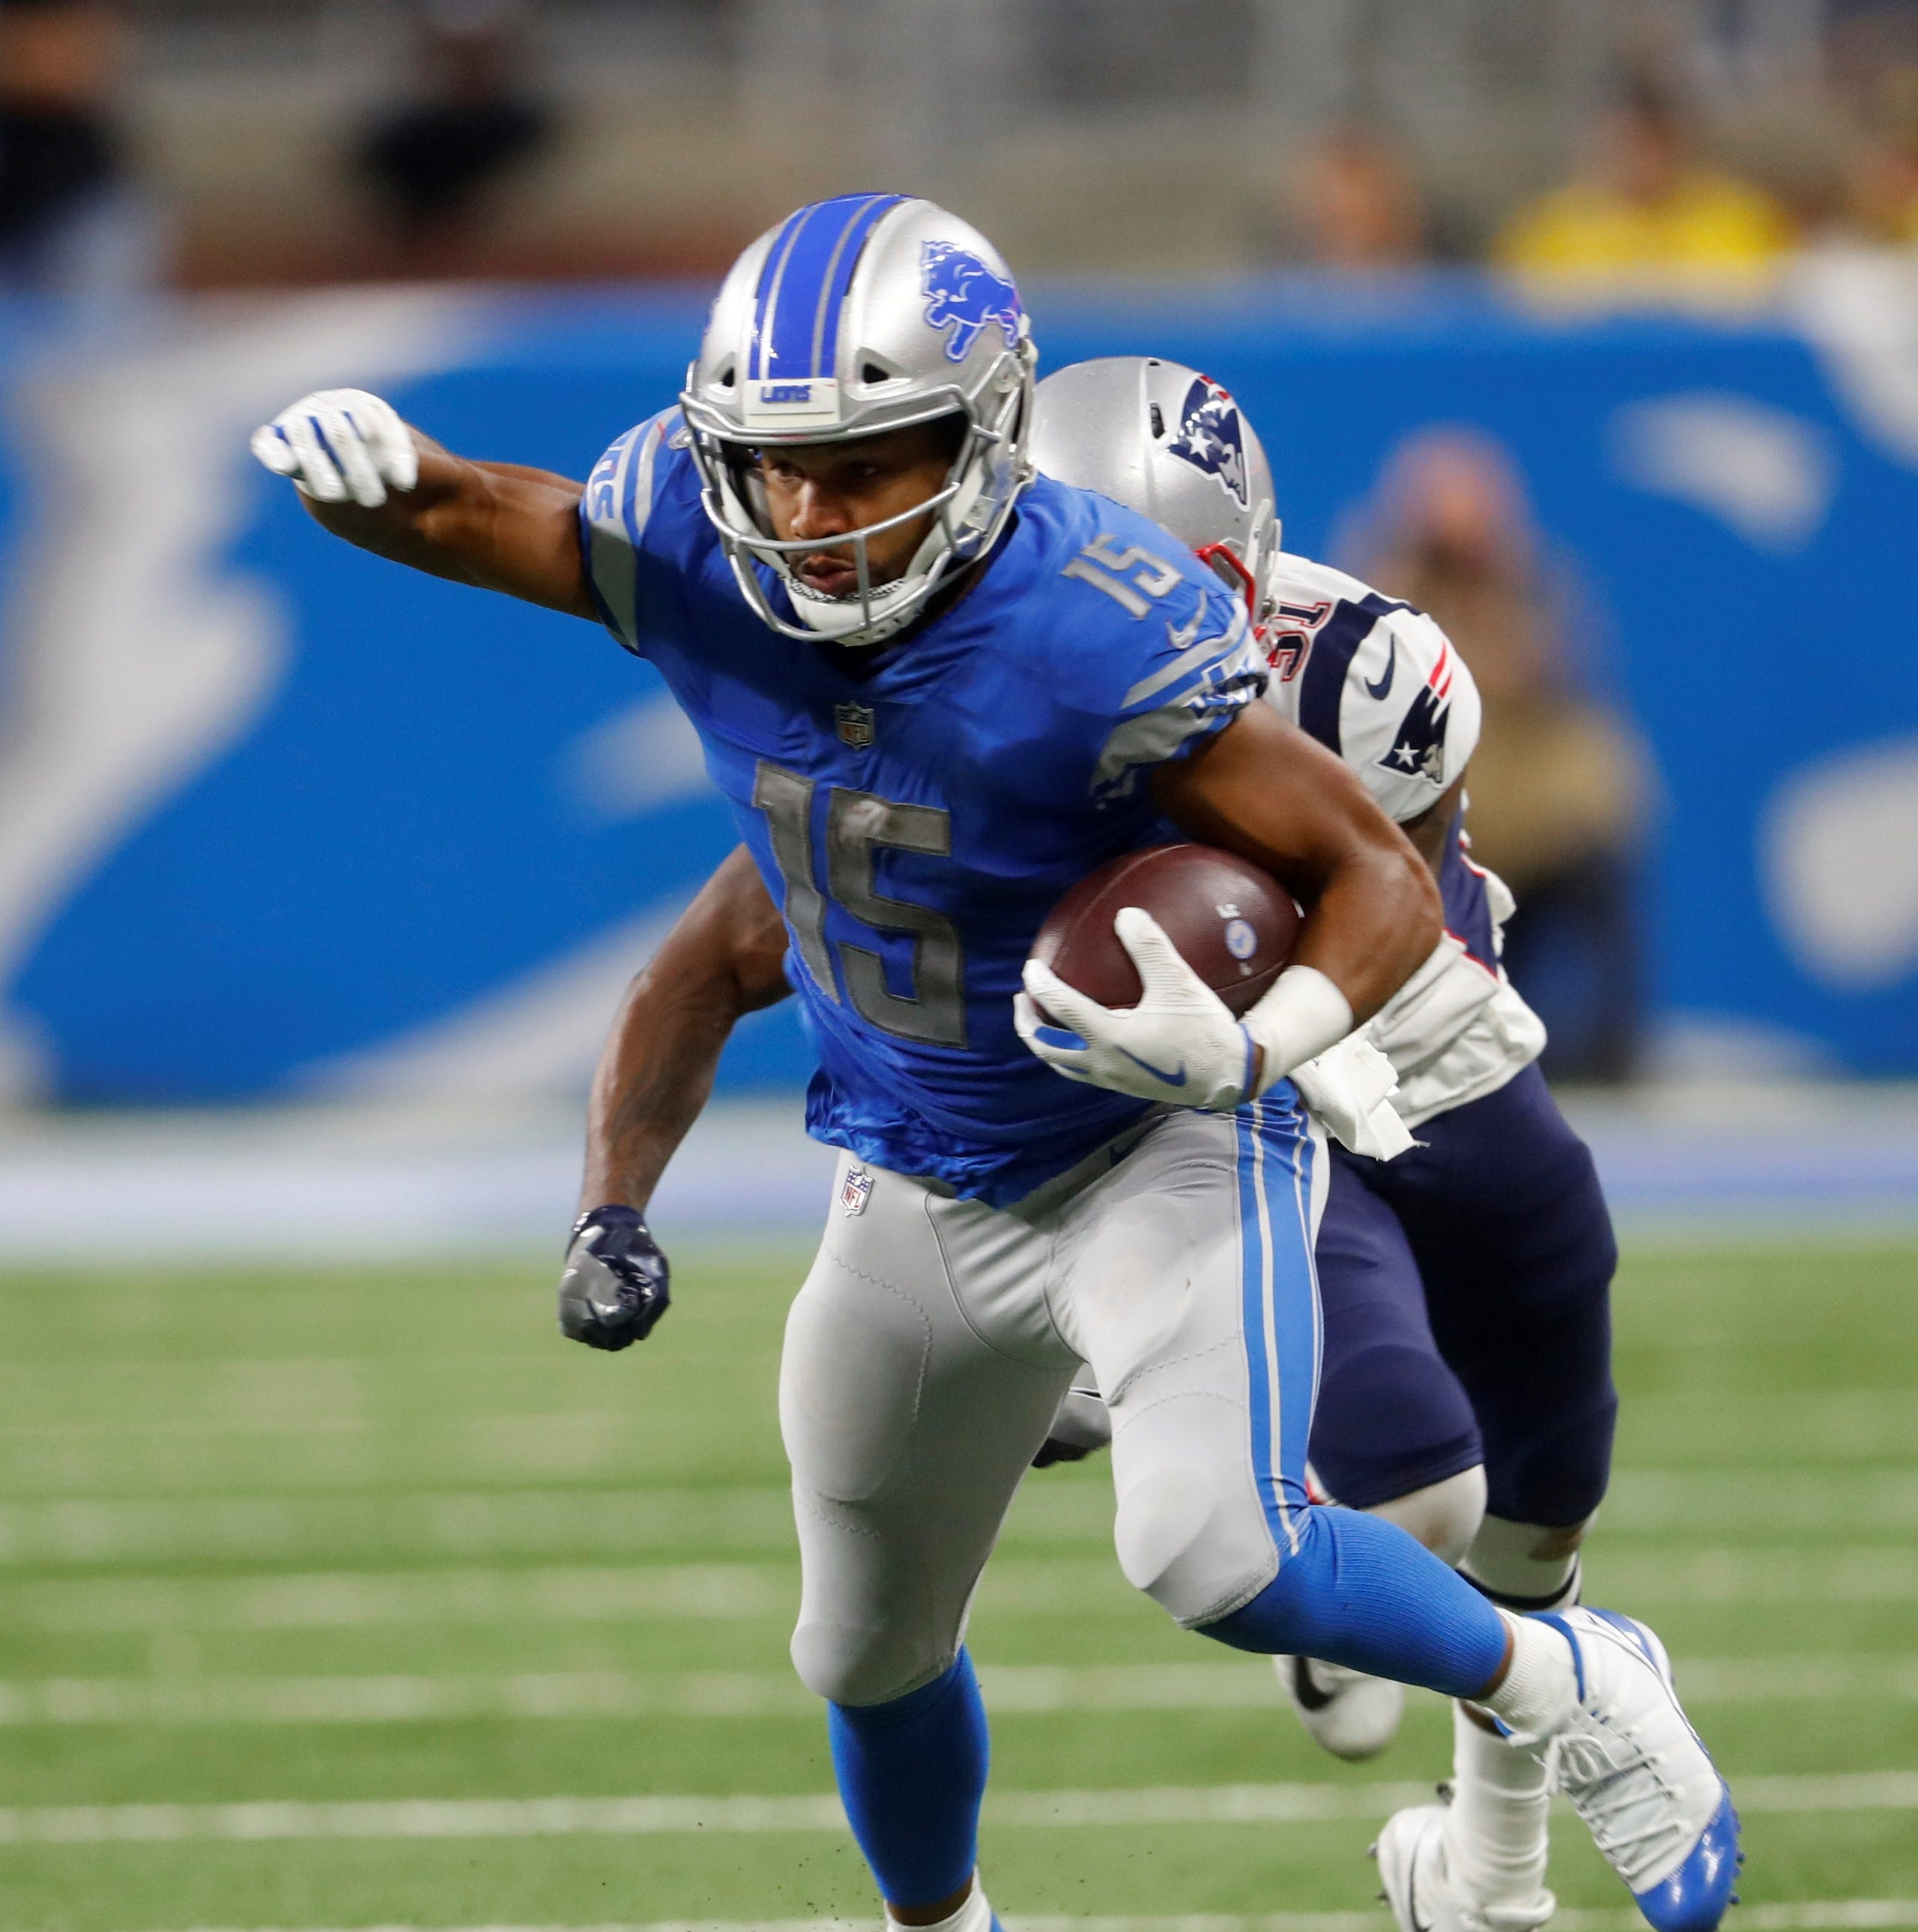 'Showtime' coming to Philadelphia: Eagles bolster receiving corps by acquiring Golden Tate